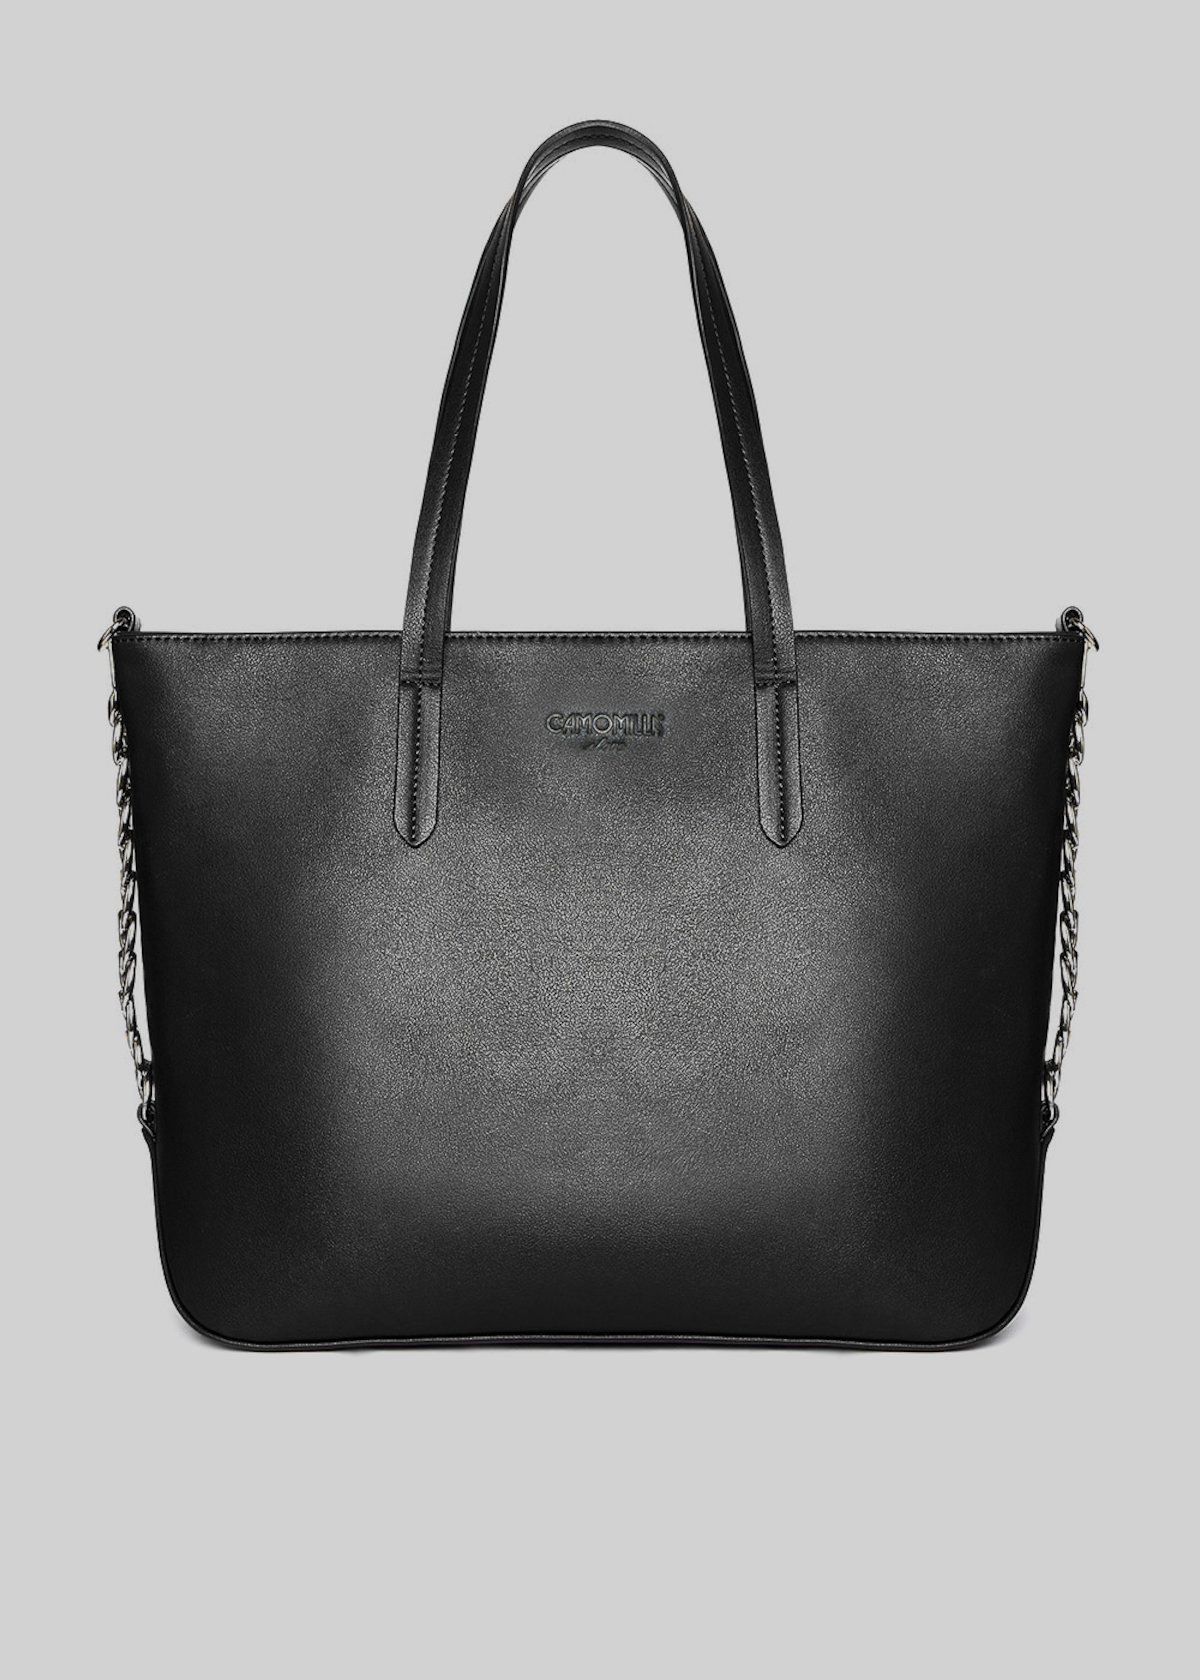 Faux-leather Blumy tote bag with chain detail - Black